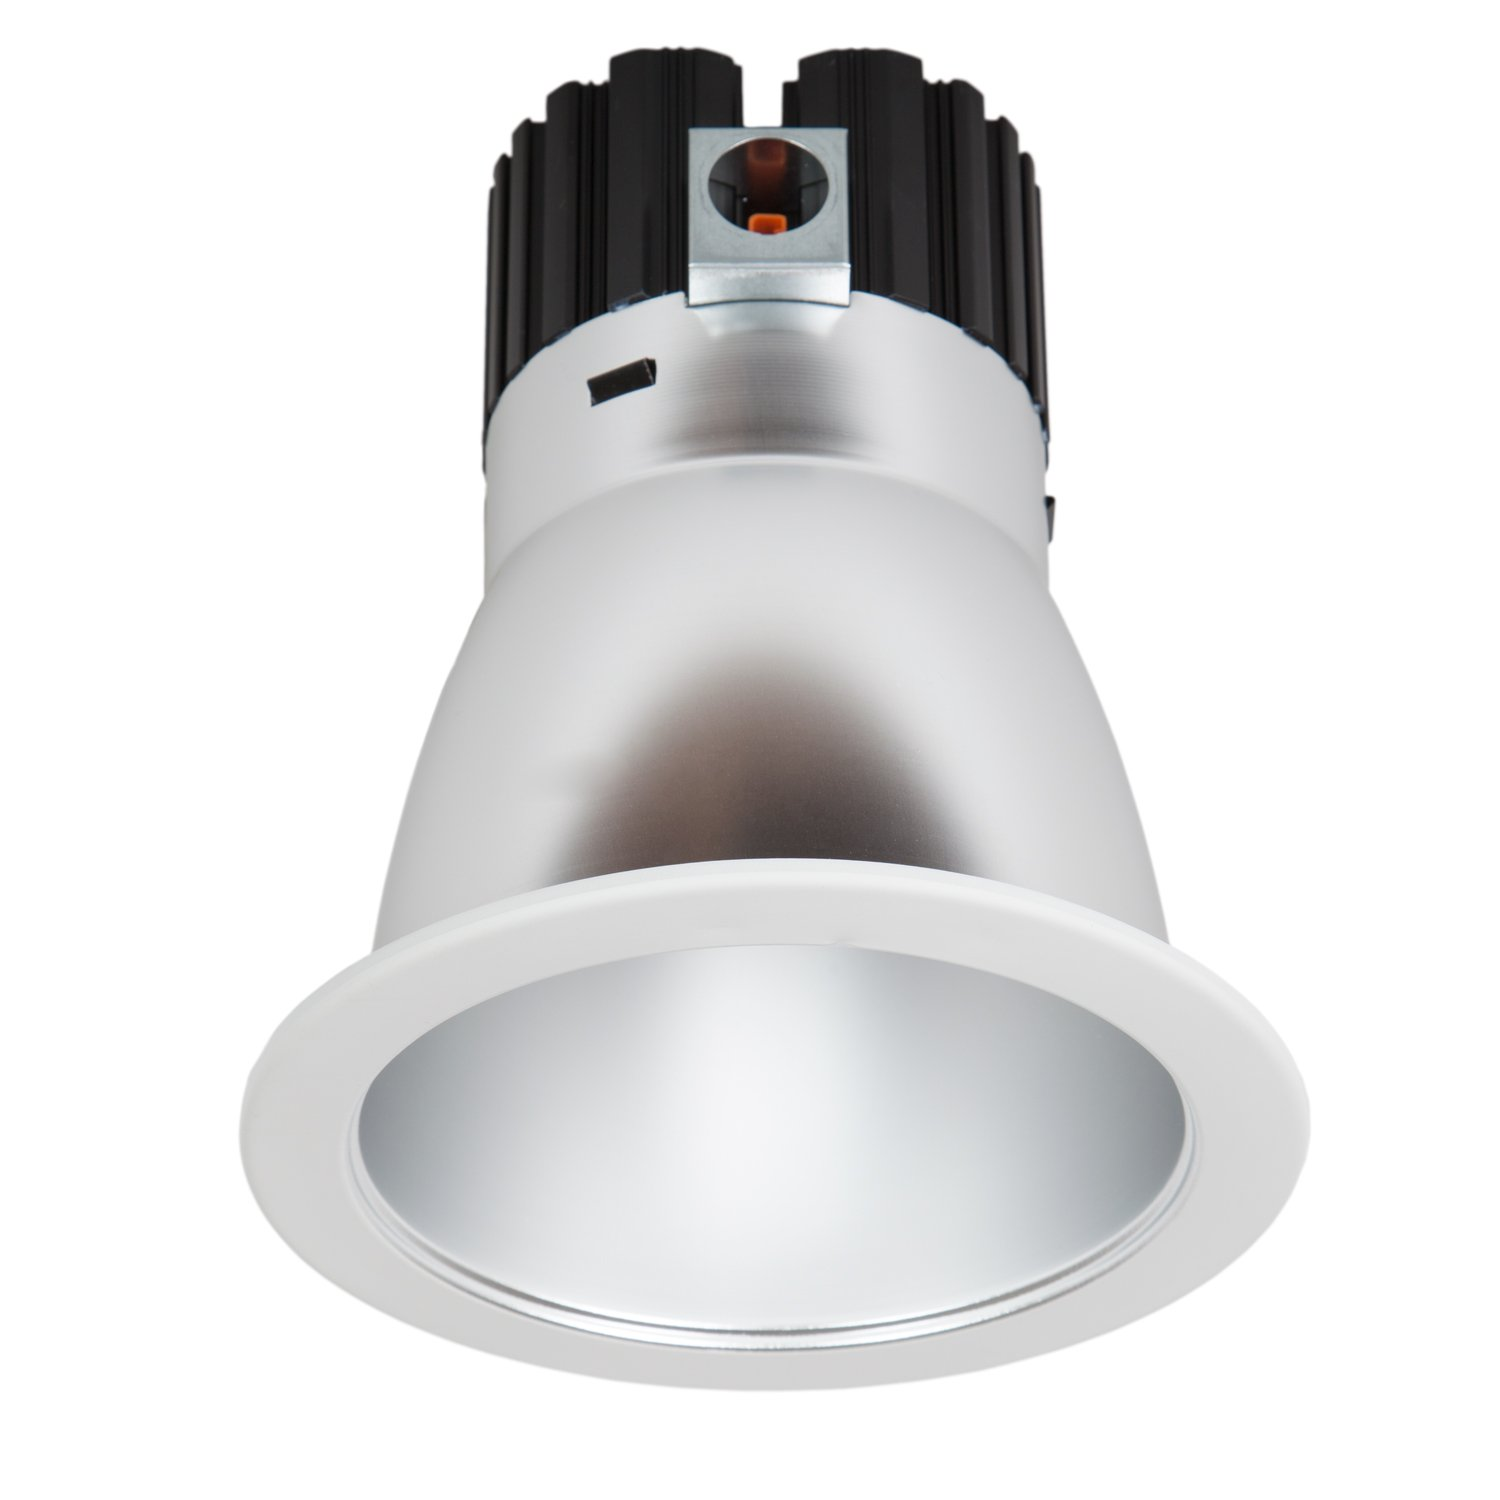 Maxxima 6 in. Commercial Recessed LED Downlight, Dimmable, 18 Watts, 1500 Lumens, 4000K Neutral White, Energy Star, Junction Box Included, Architectural Downlight (2 Pack) by Maxxima (Image #3)